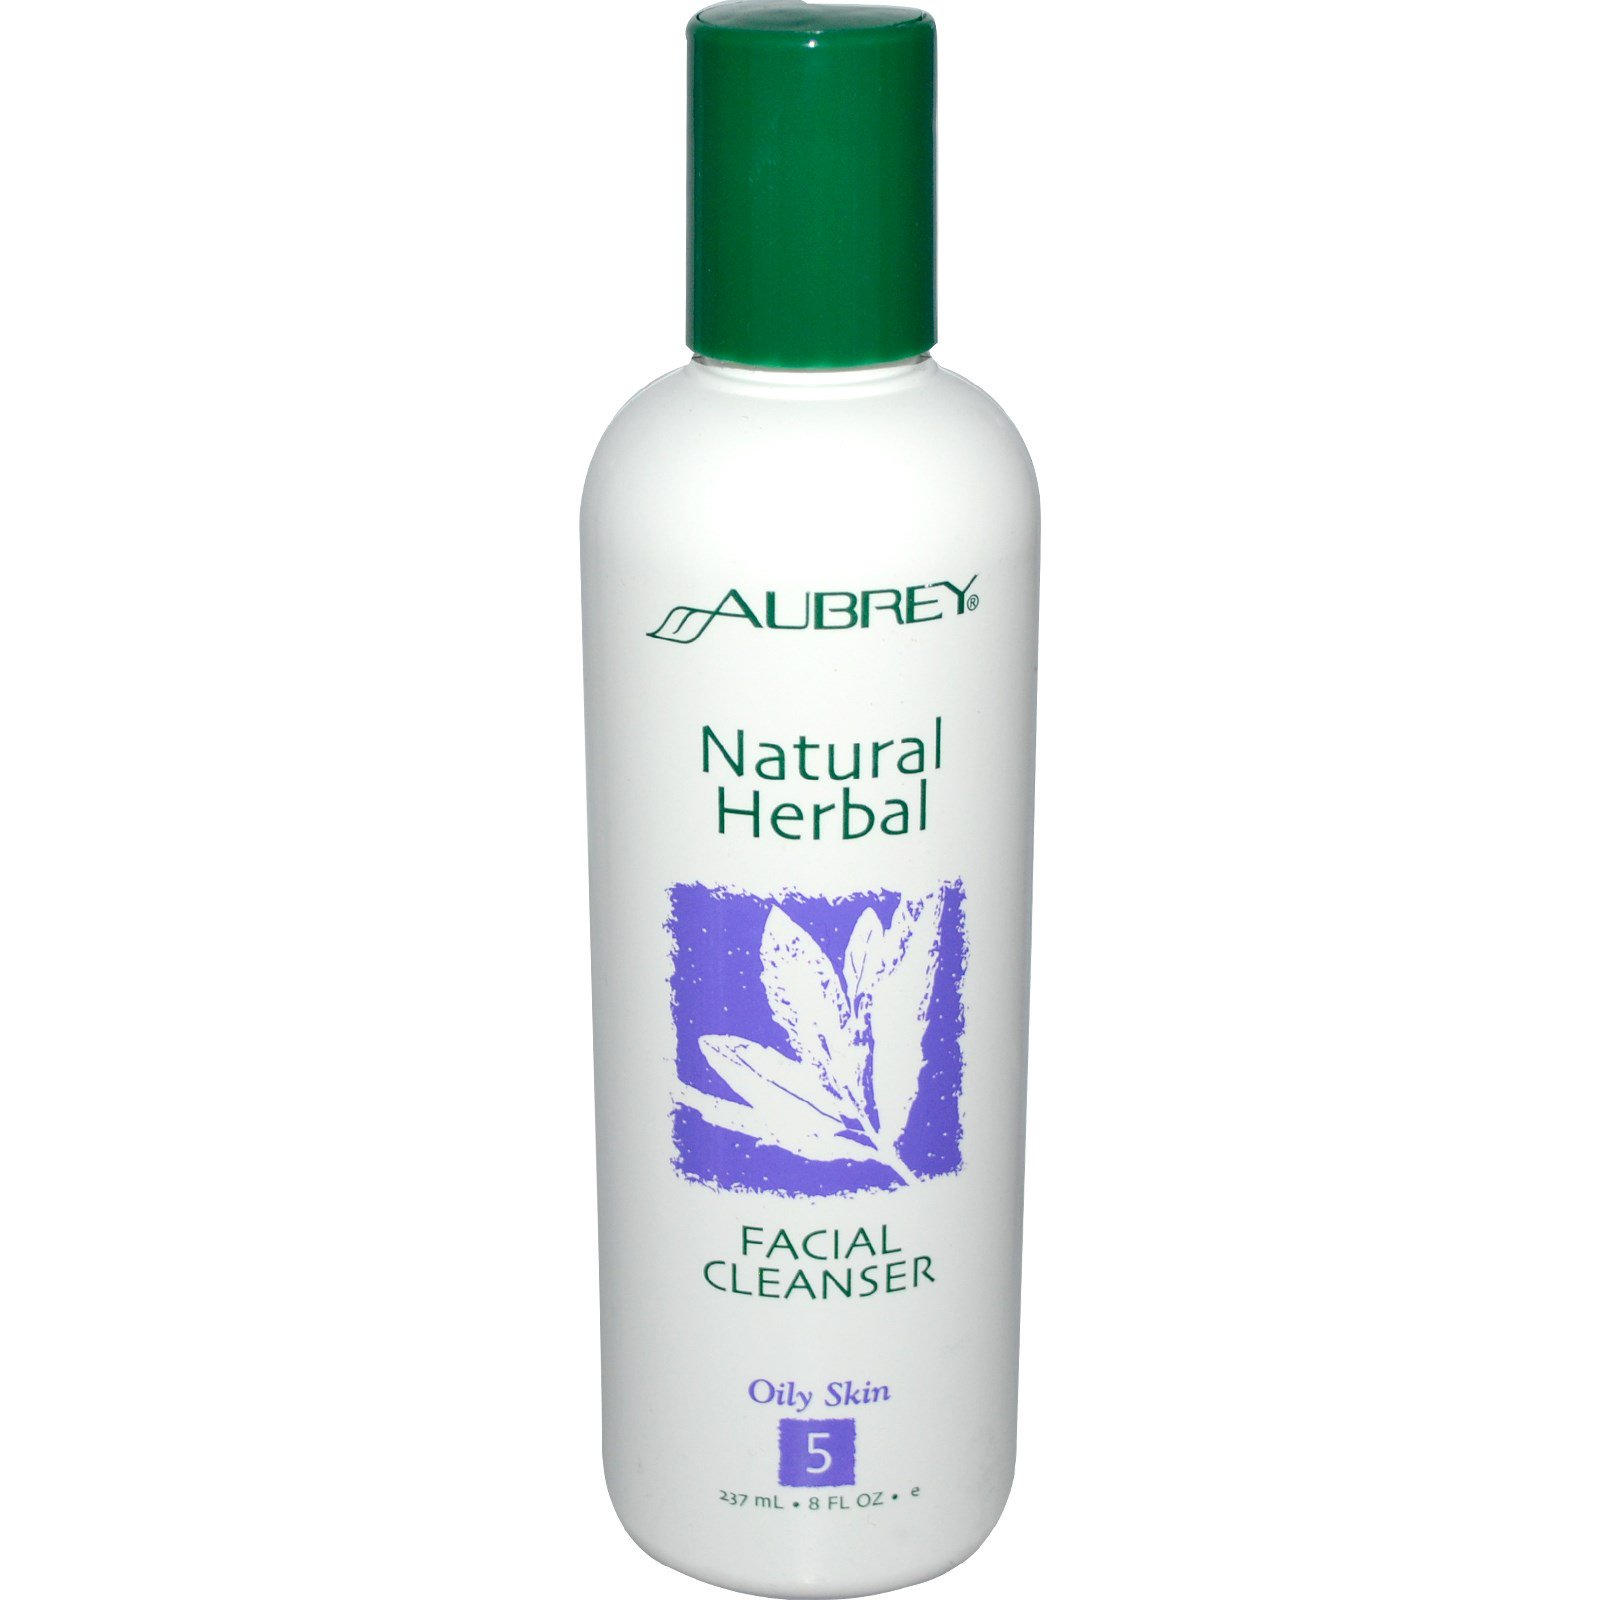 Natural herbal facial cleanser